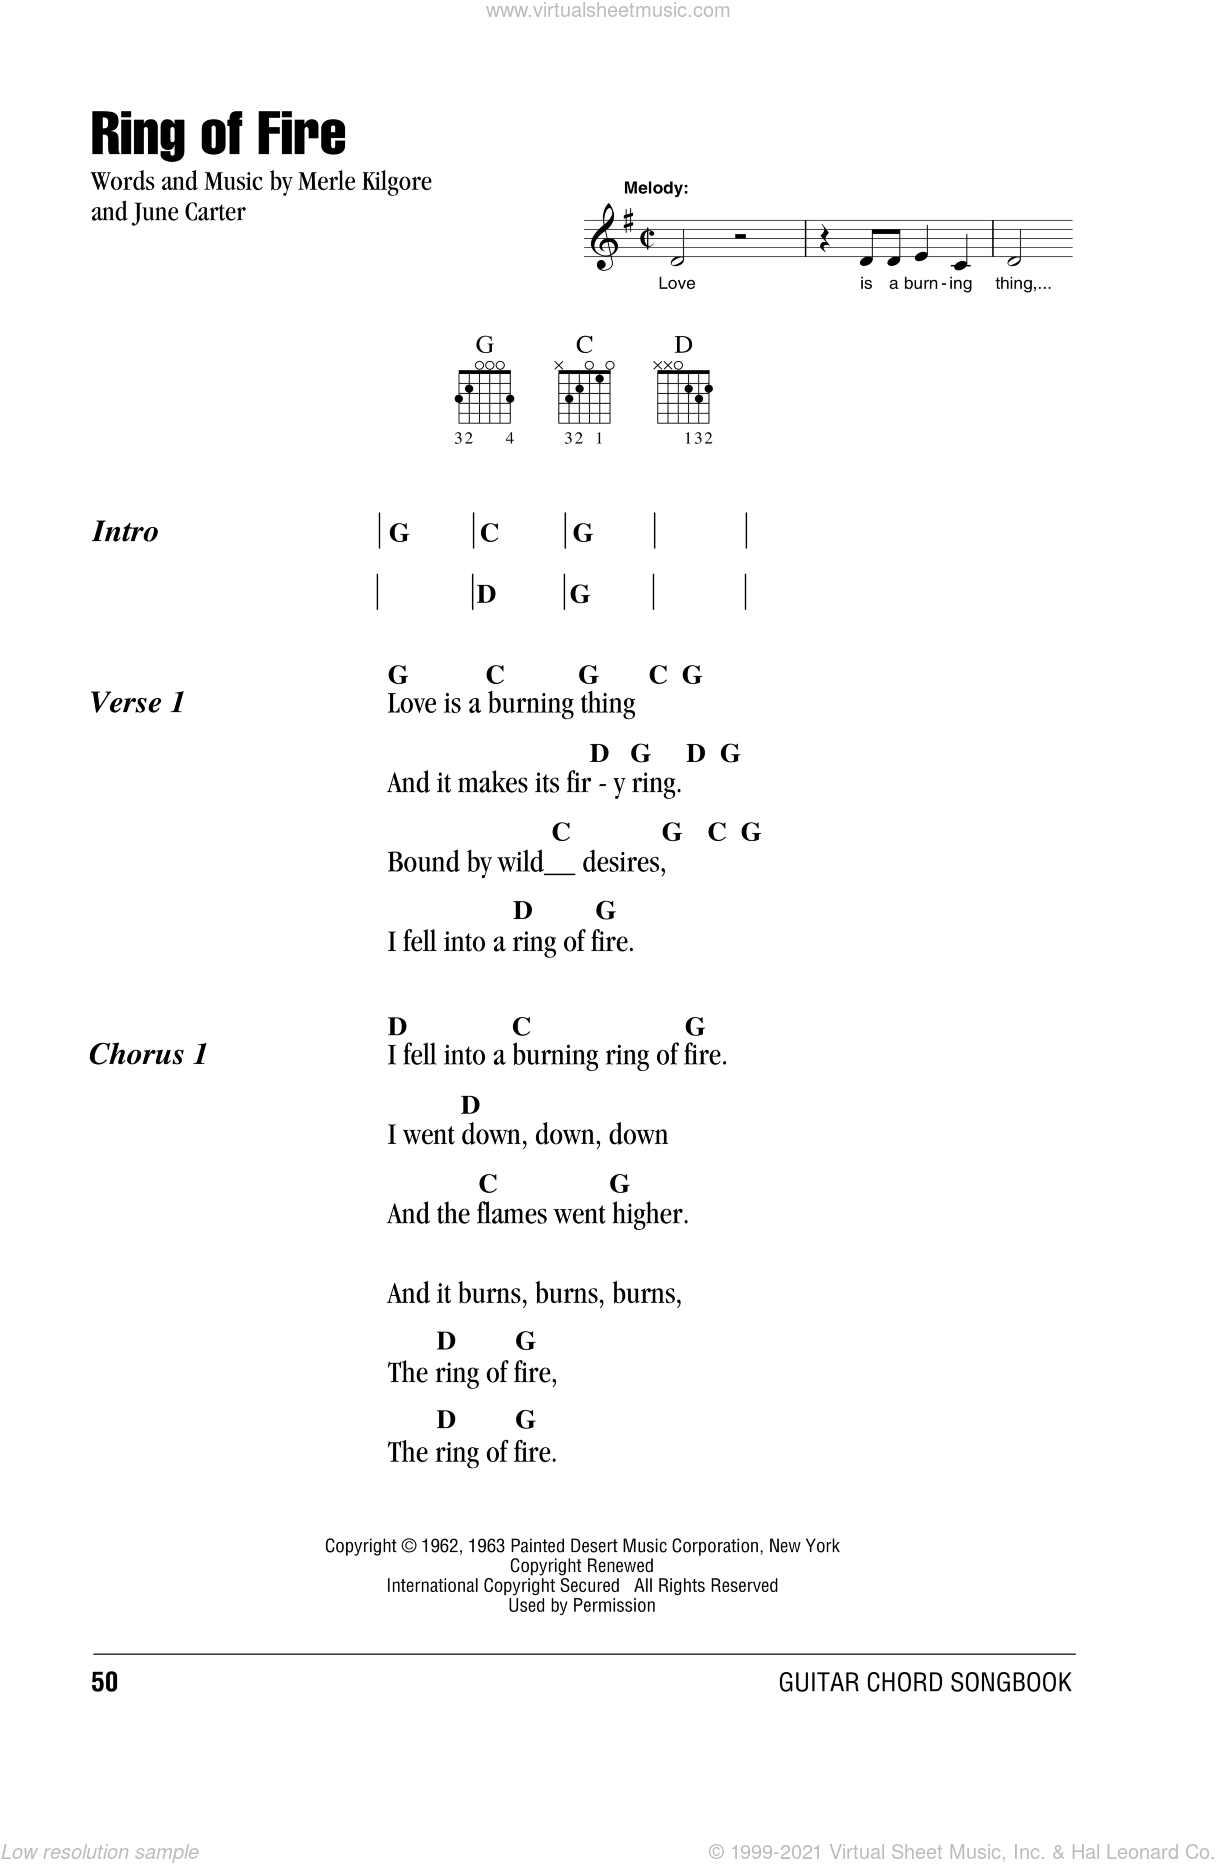 Ring Of Fire sheet music for guitar (chords) by Johnny Cash, June Carter and Merle Kilgore, intermediate. Score Image Preview.